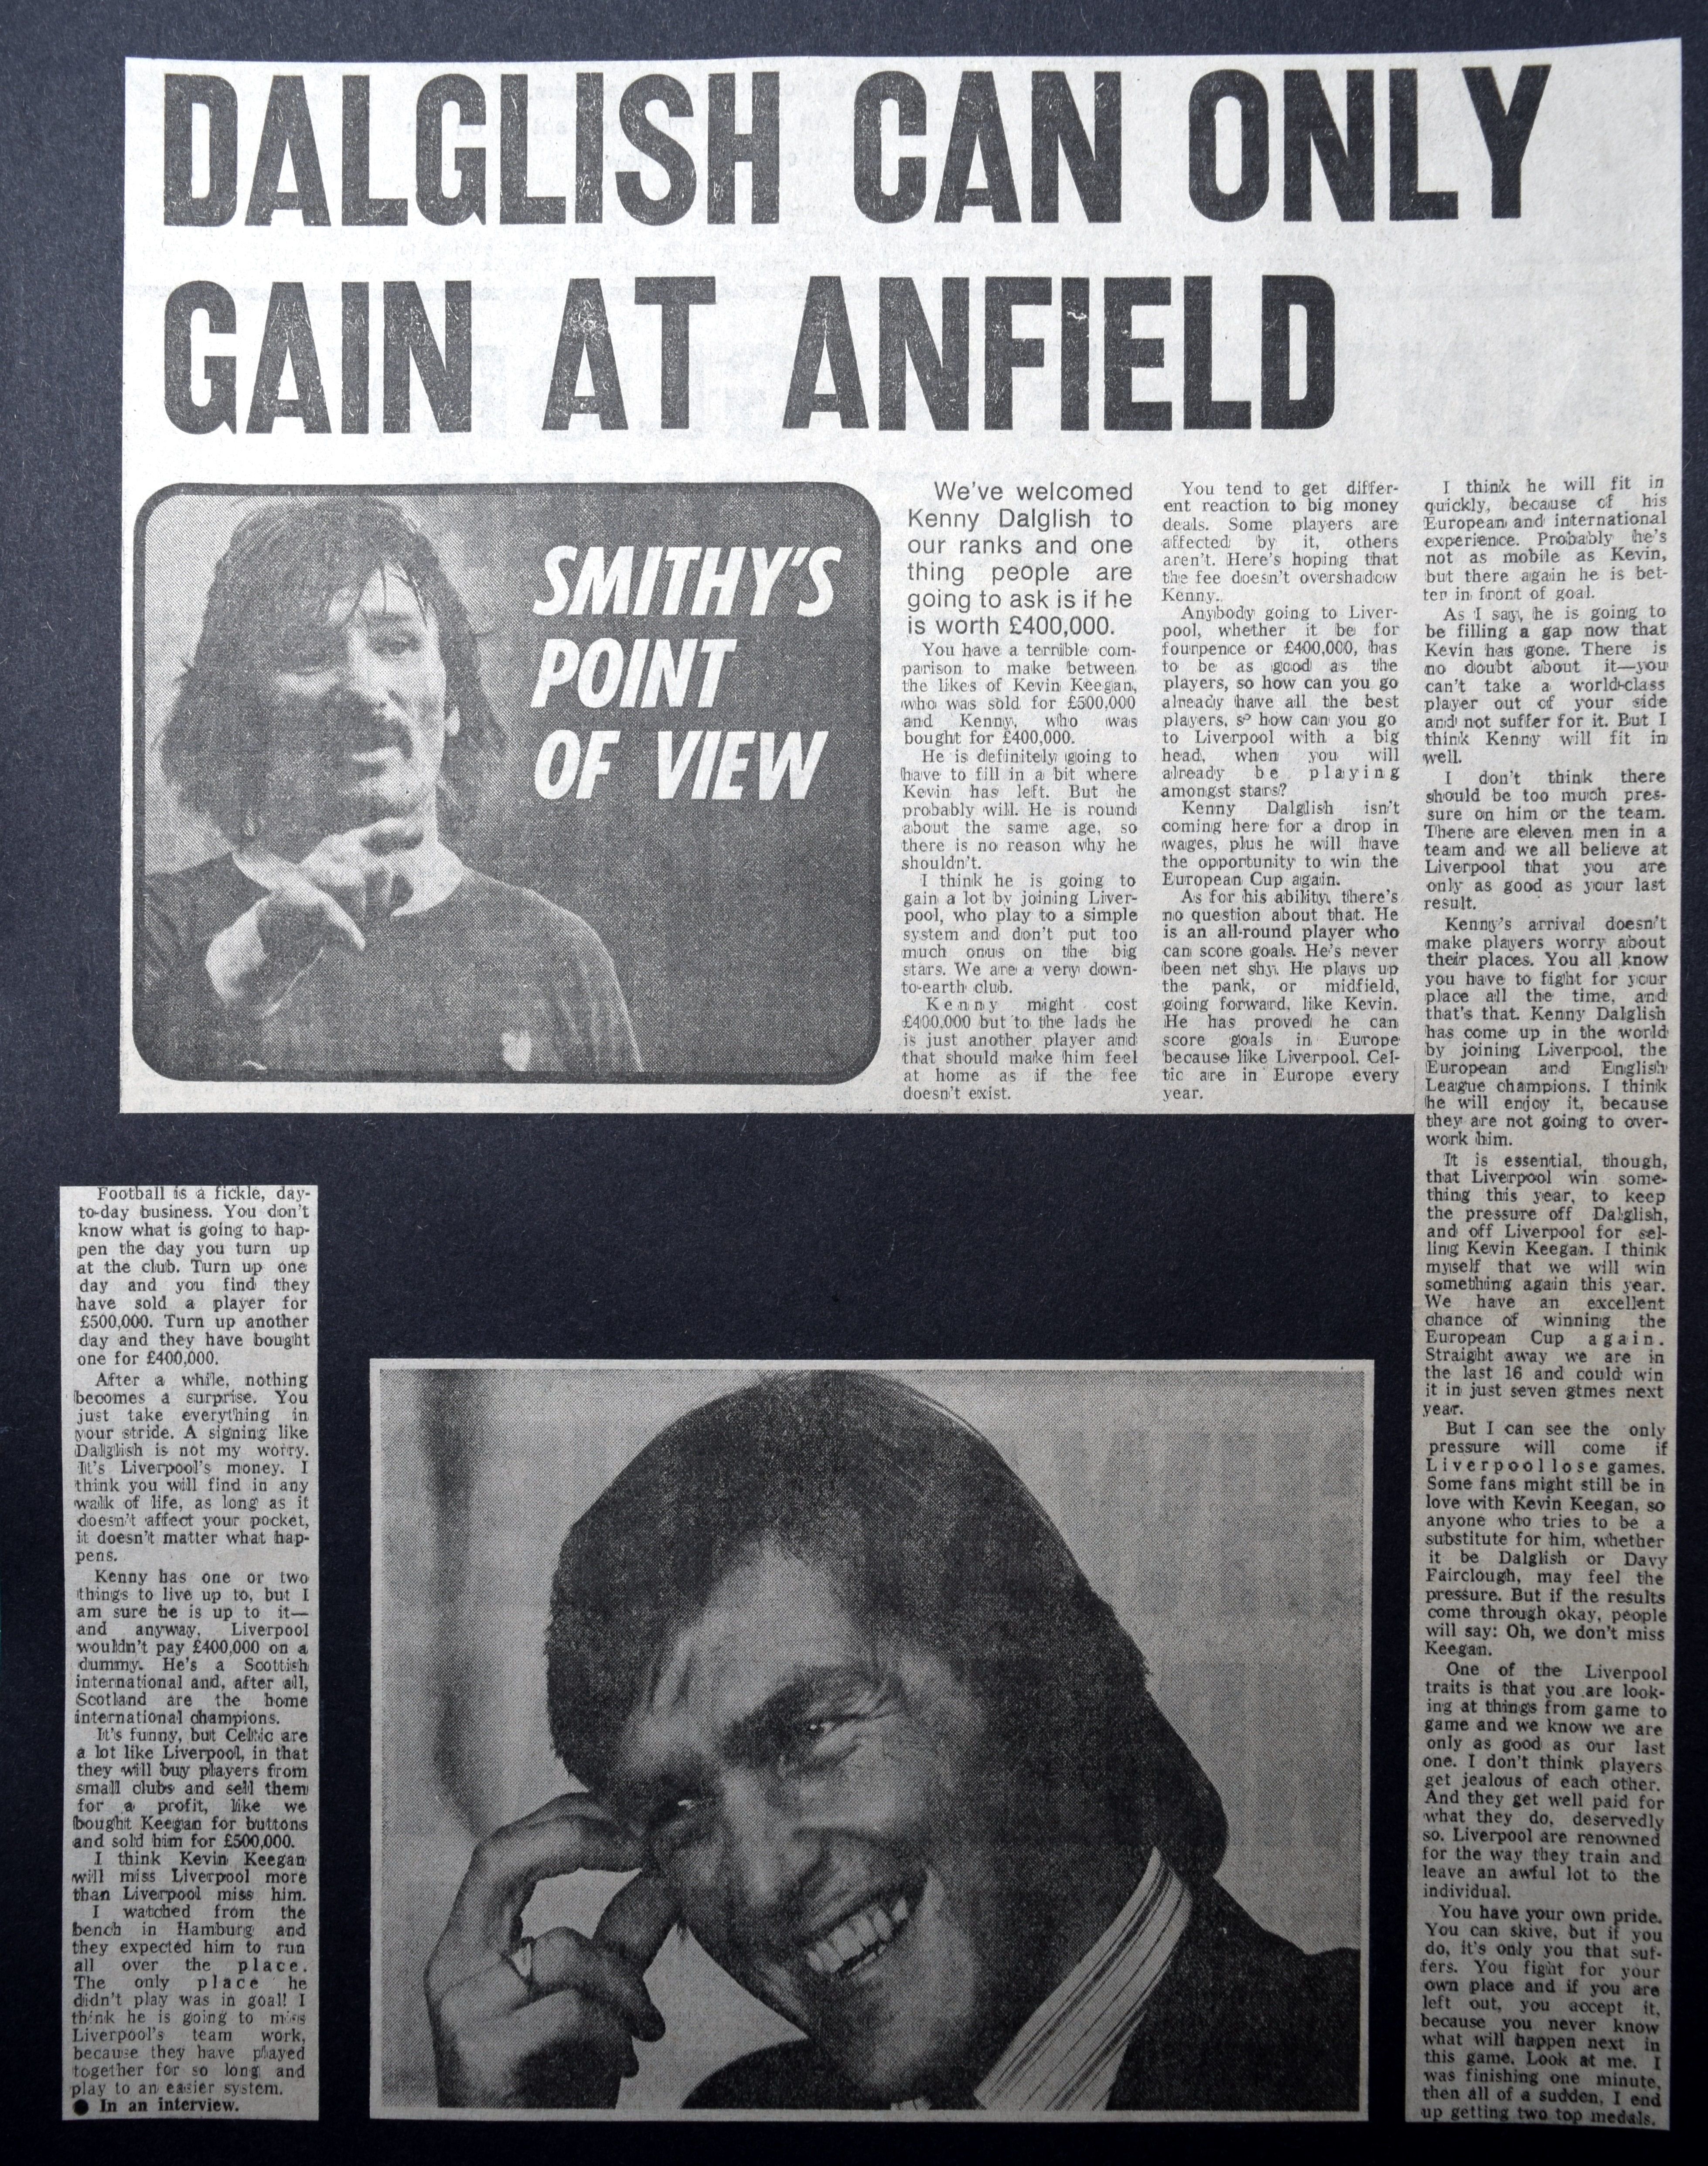 Dalglish can only gain at Anfield - August 1977